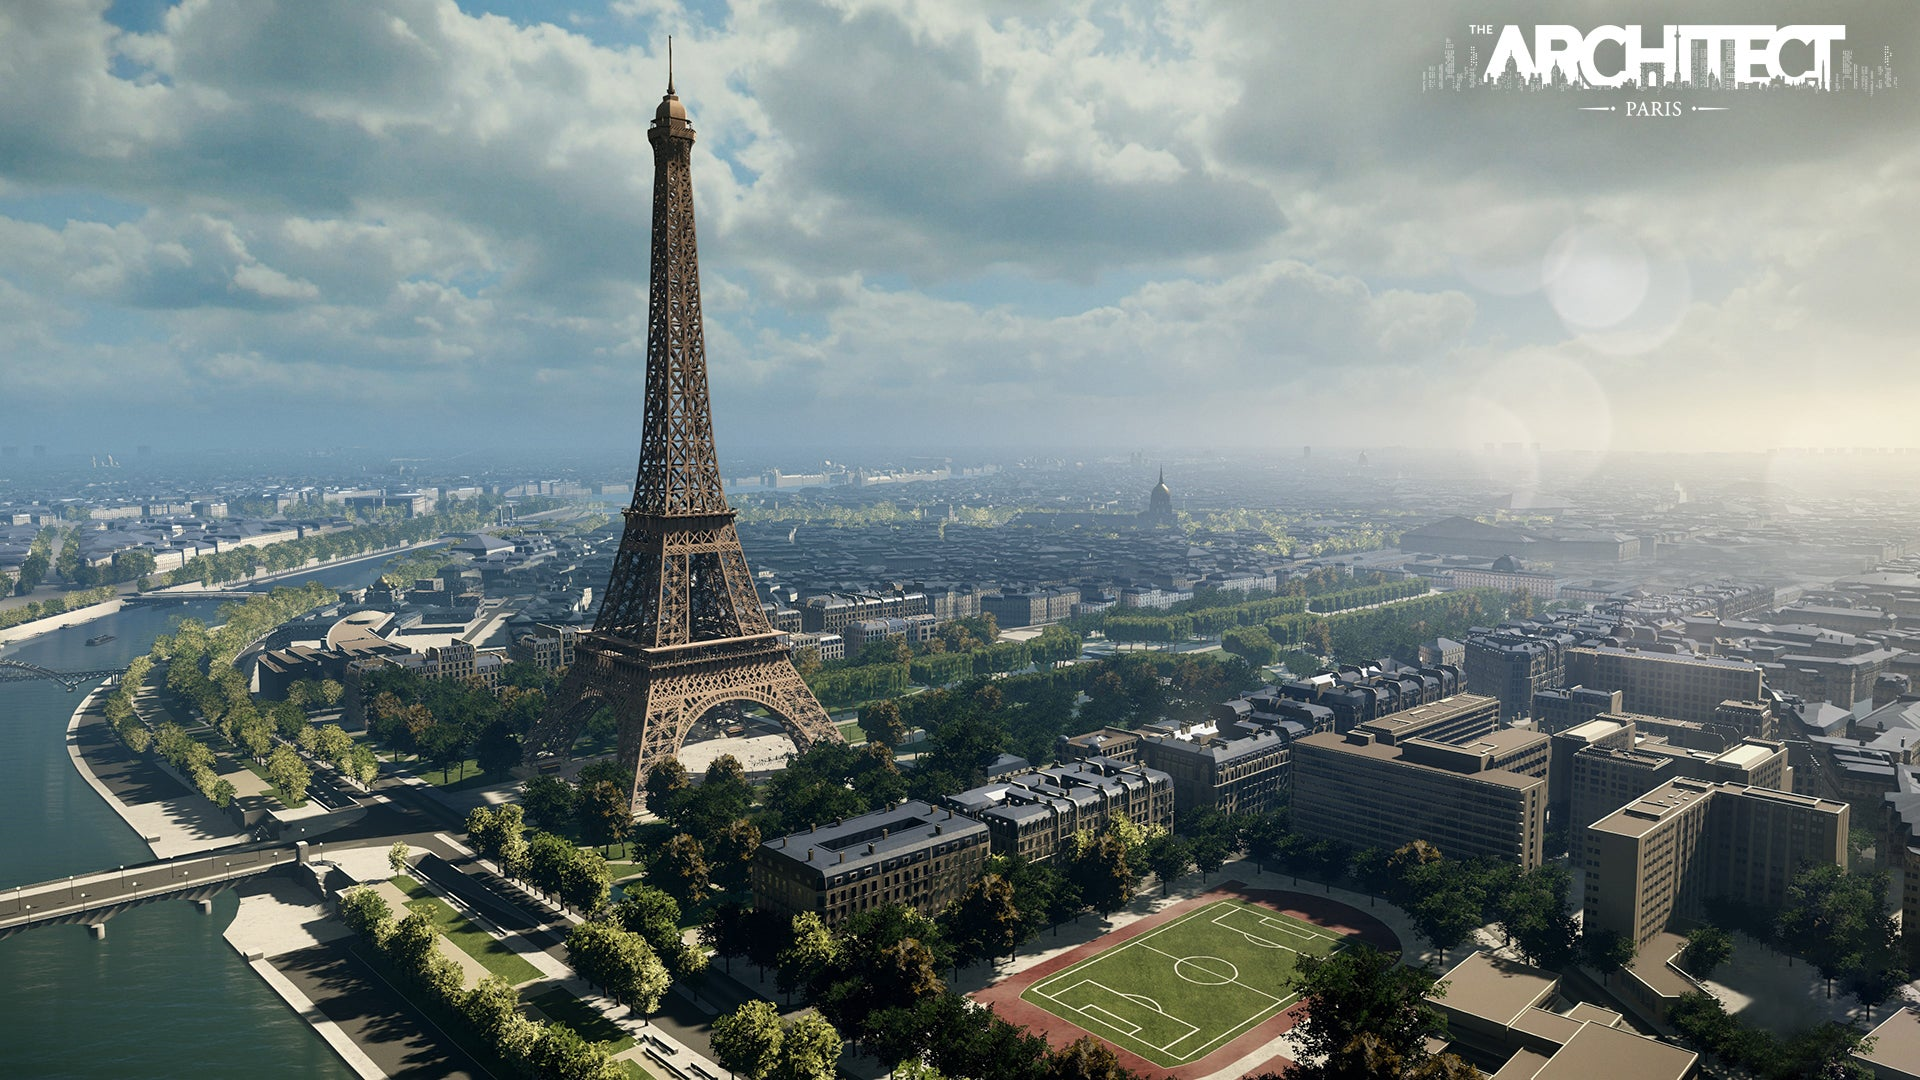 The Architect: Paris puts a clever twist on the city builder